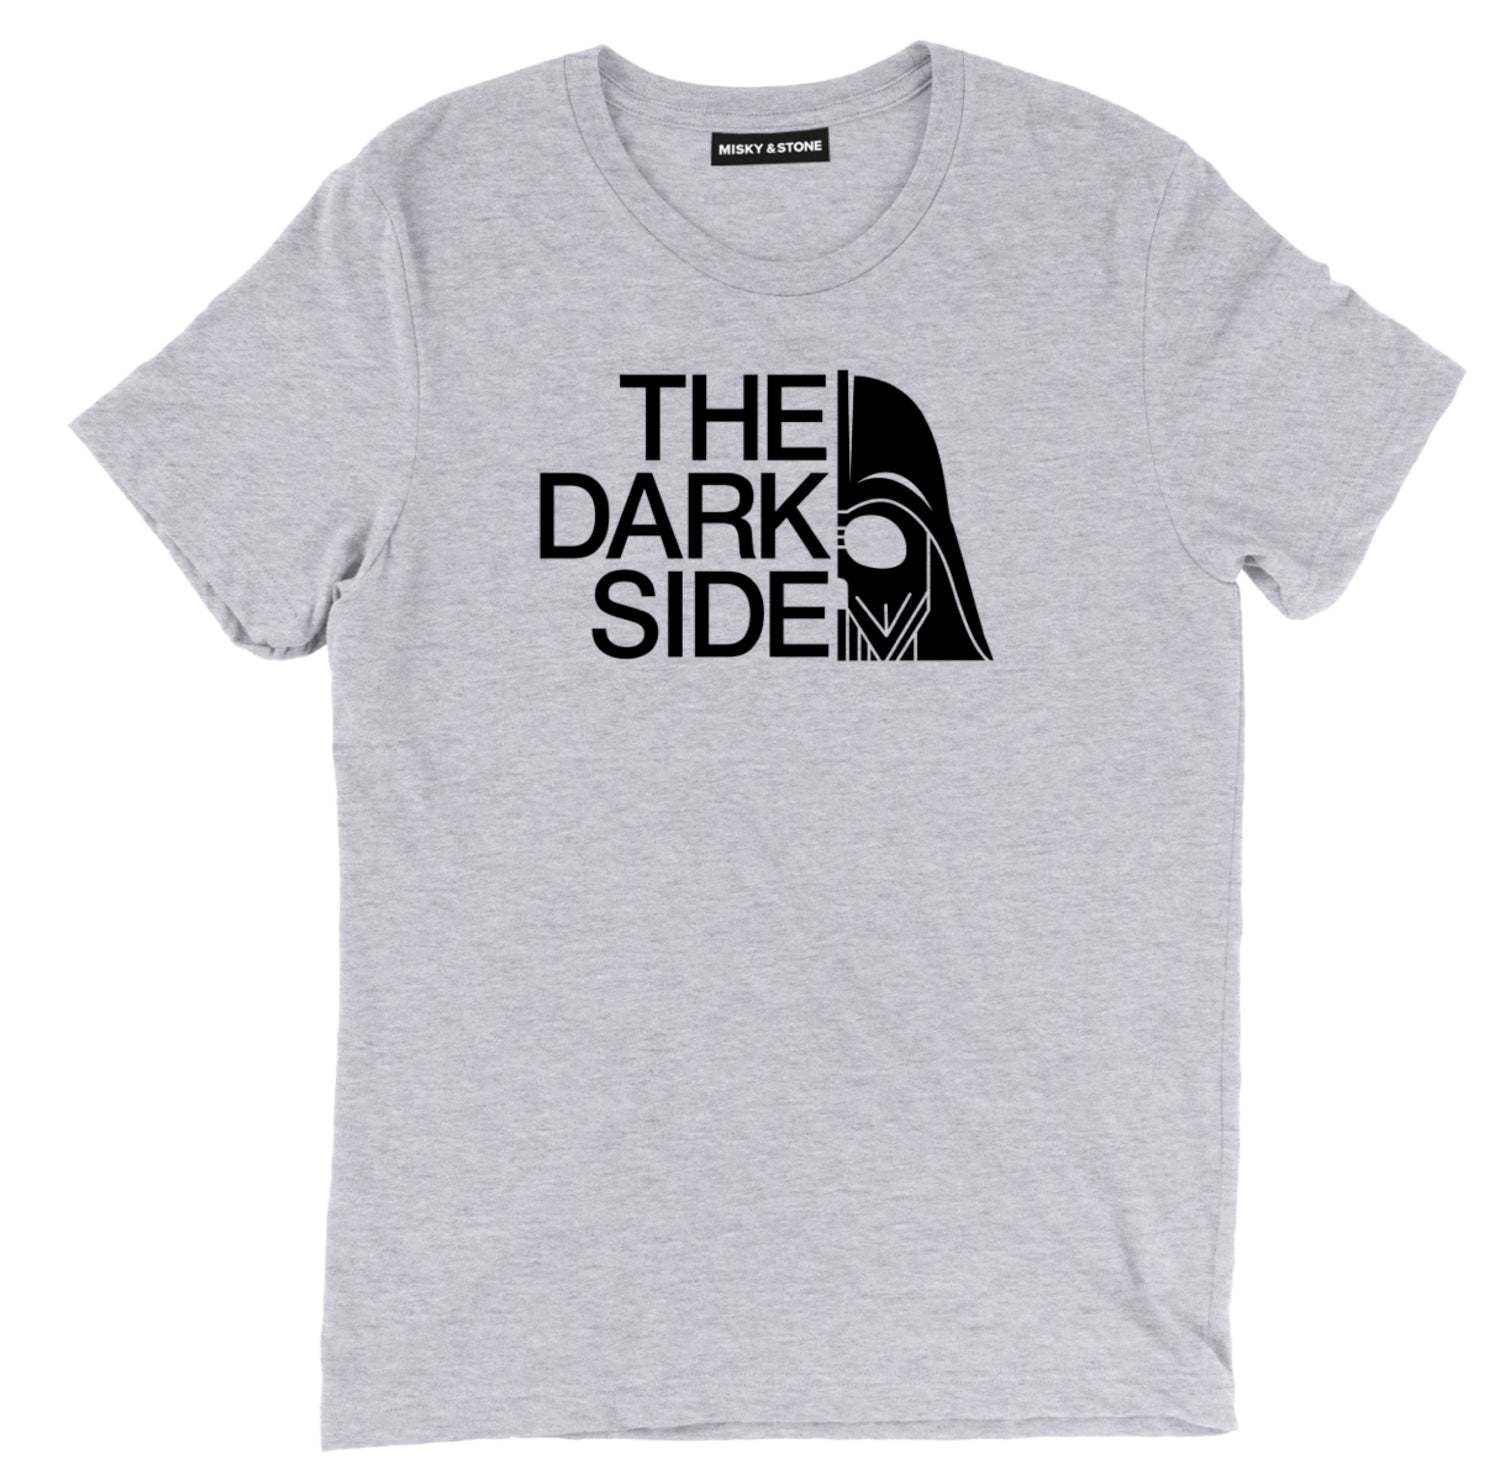 the dark side t shirt, the dark side shirt, the dark side tee,